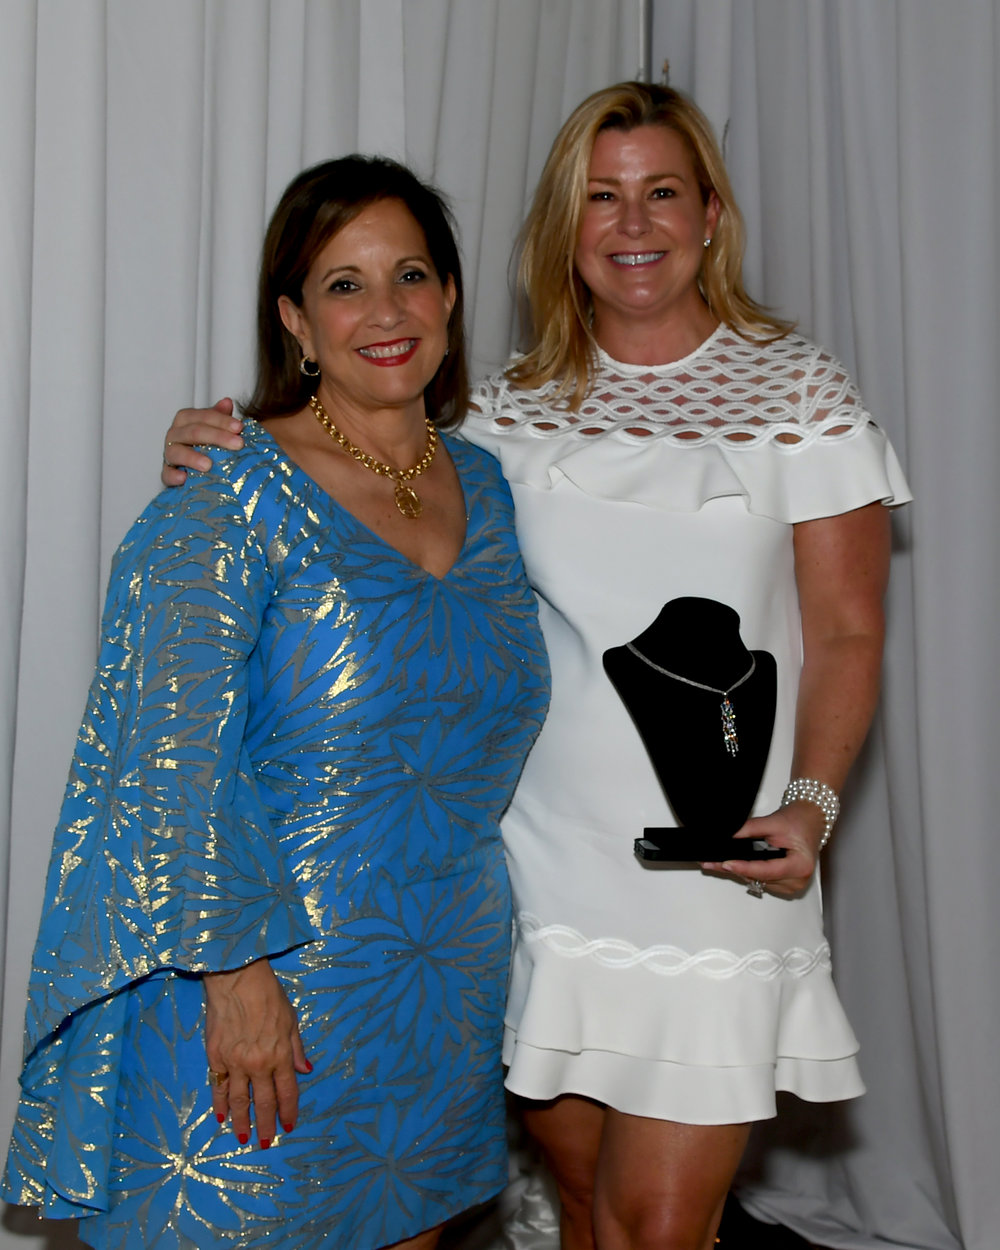 DSC_7990 Joanne Adams-Exective Director and Libby Imperio-President Board of Directors.jpg